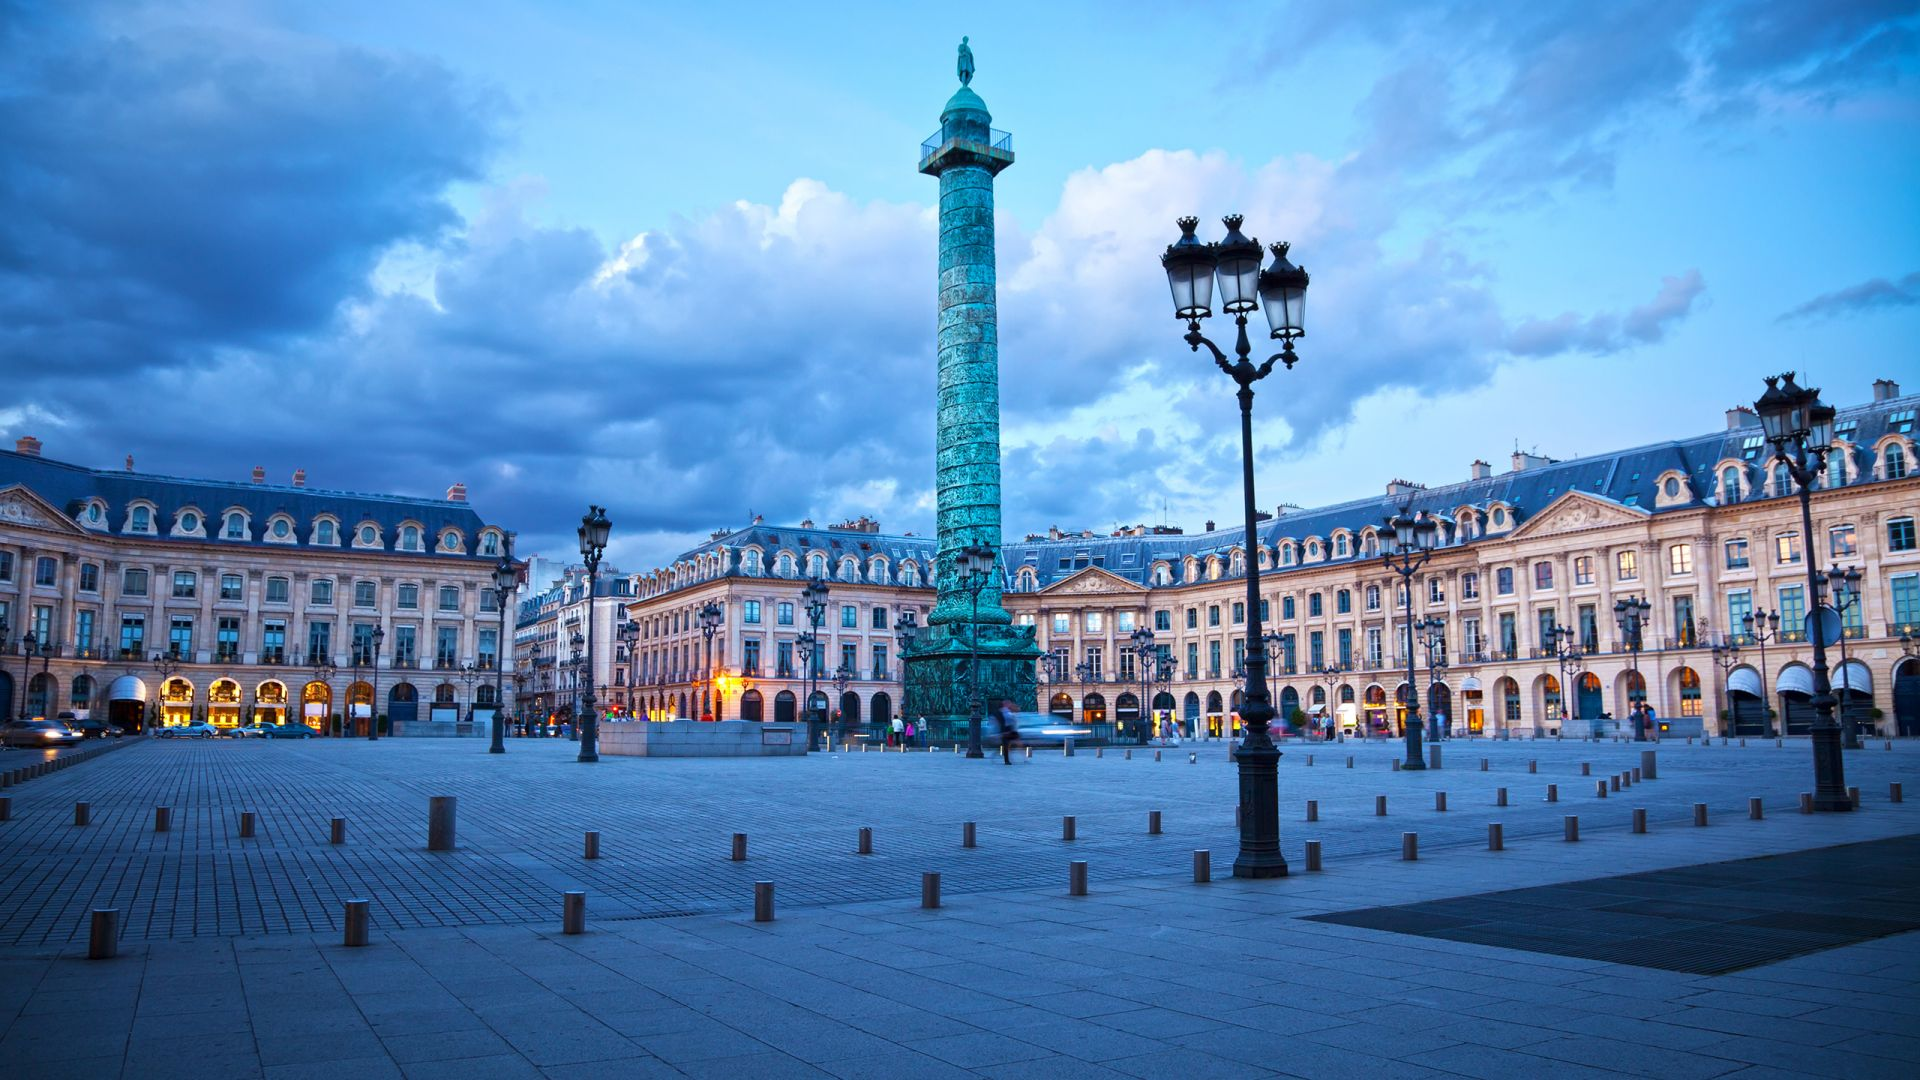 Hotel Park Hyatt by the Place Vendôme in Paris